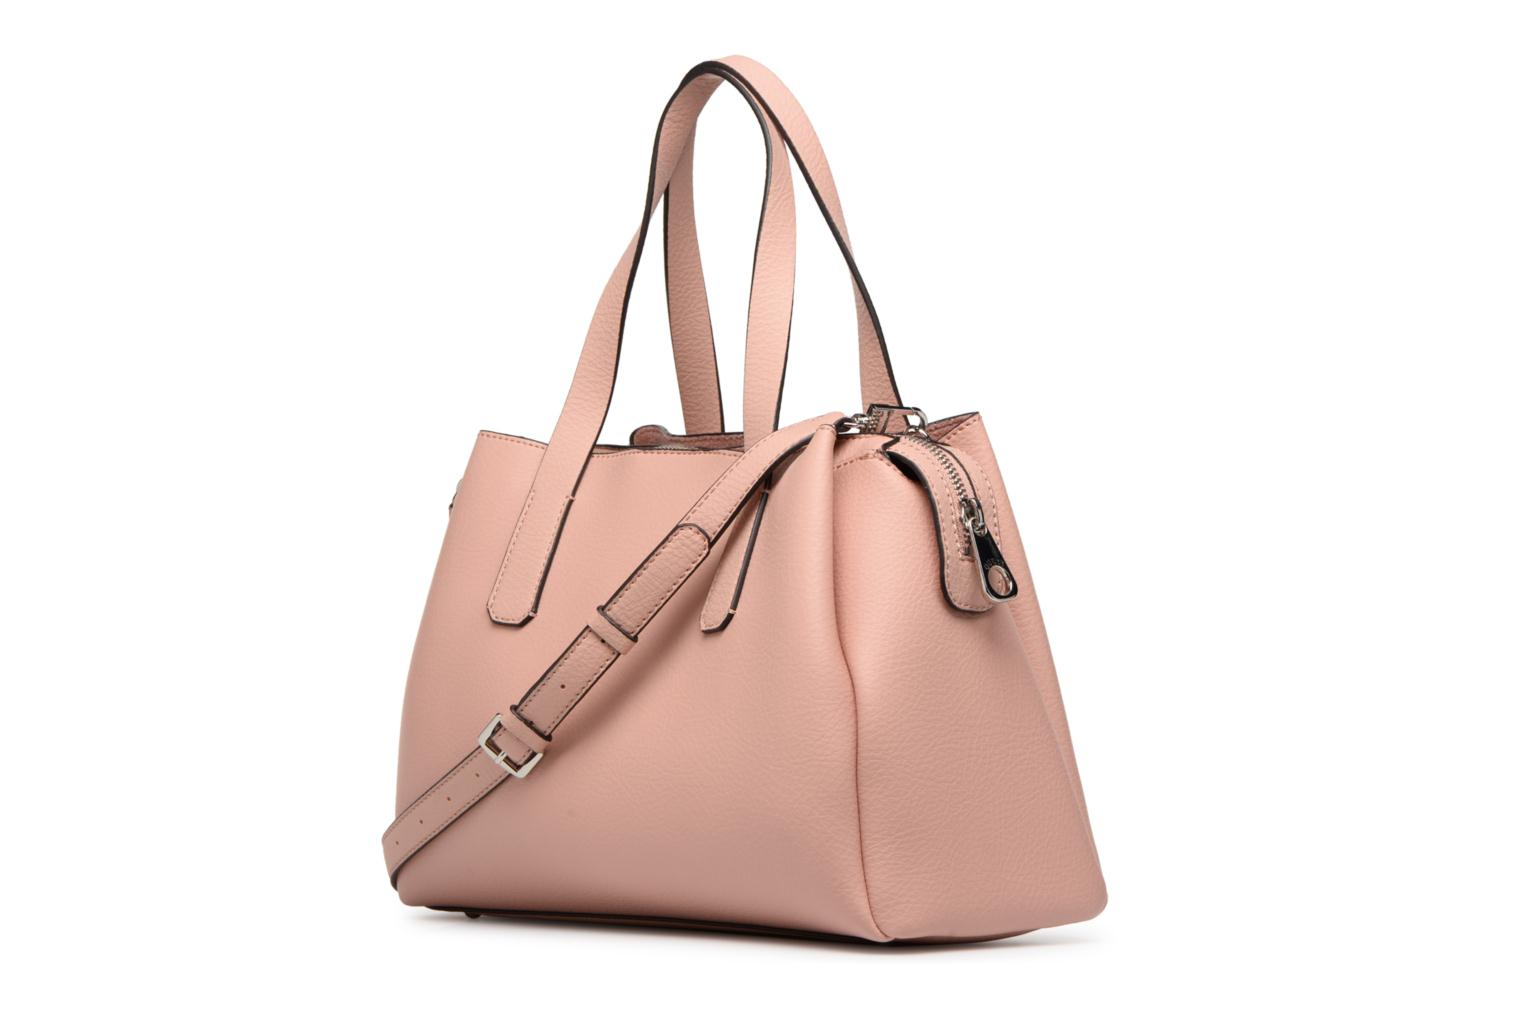 Rose Satchel Guess Satchel Guess Trudy Guess Guess Satchel Girlfriend Girlfriend Girlfriend Rose Rose Trudy Trudy OAqxT6